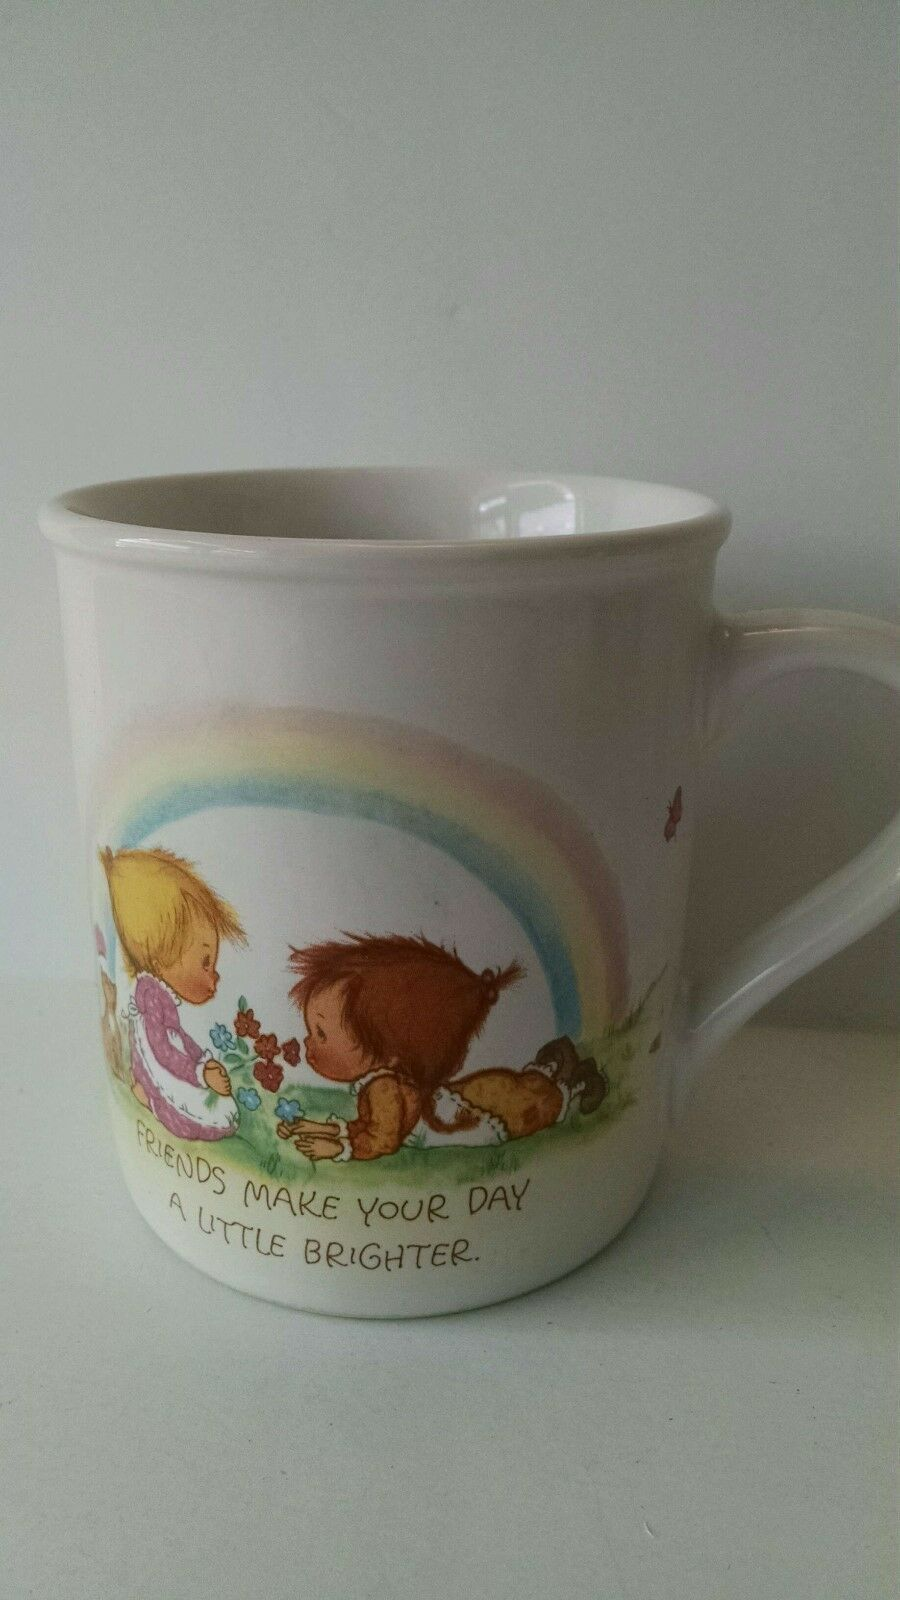 Primary image for Vintage Hallmark Mug Mates Collectible Coffee Mug 1983 Made in Japan Friends 8oz